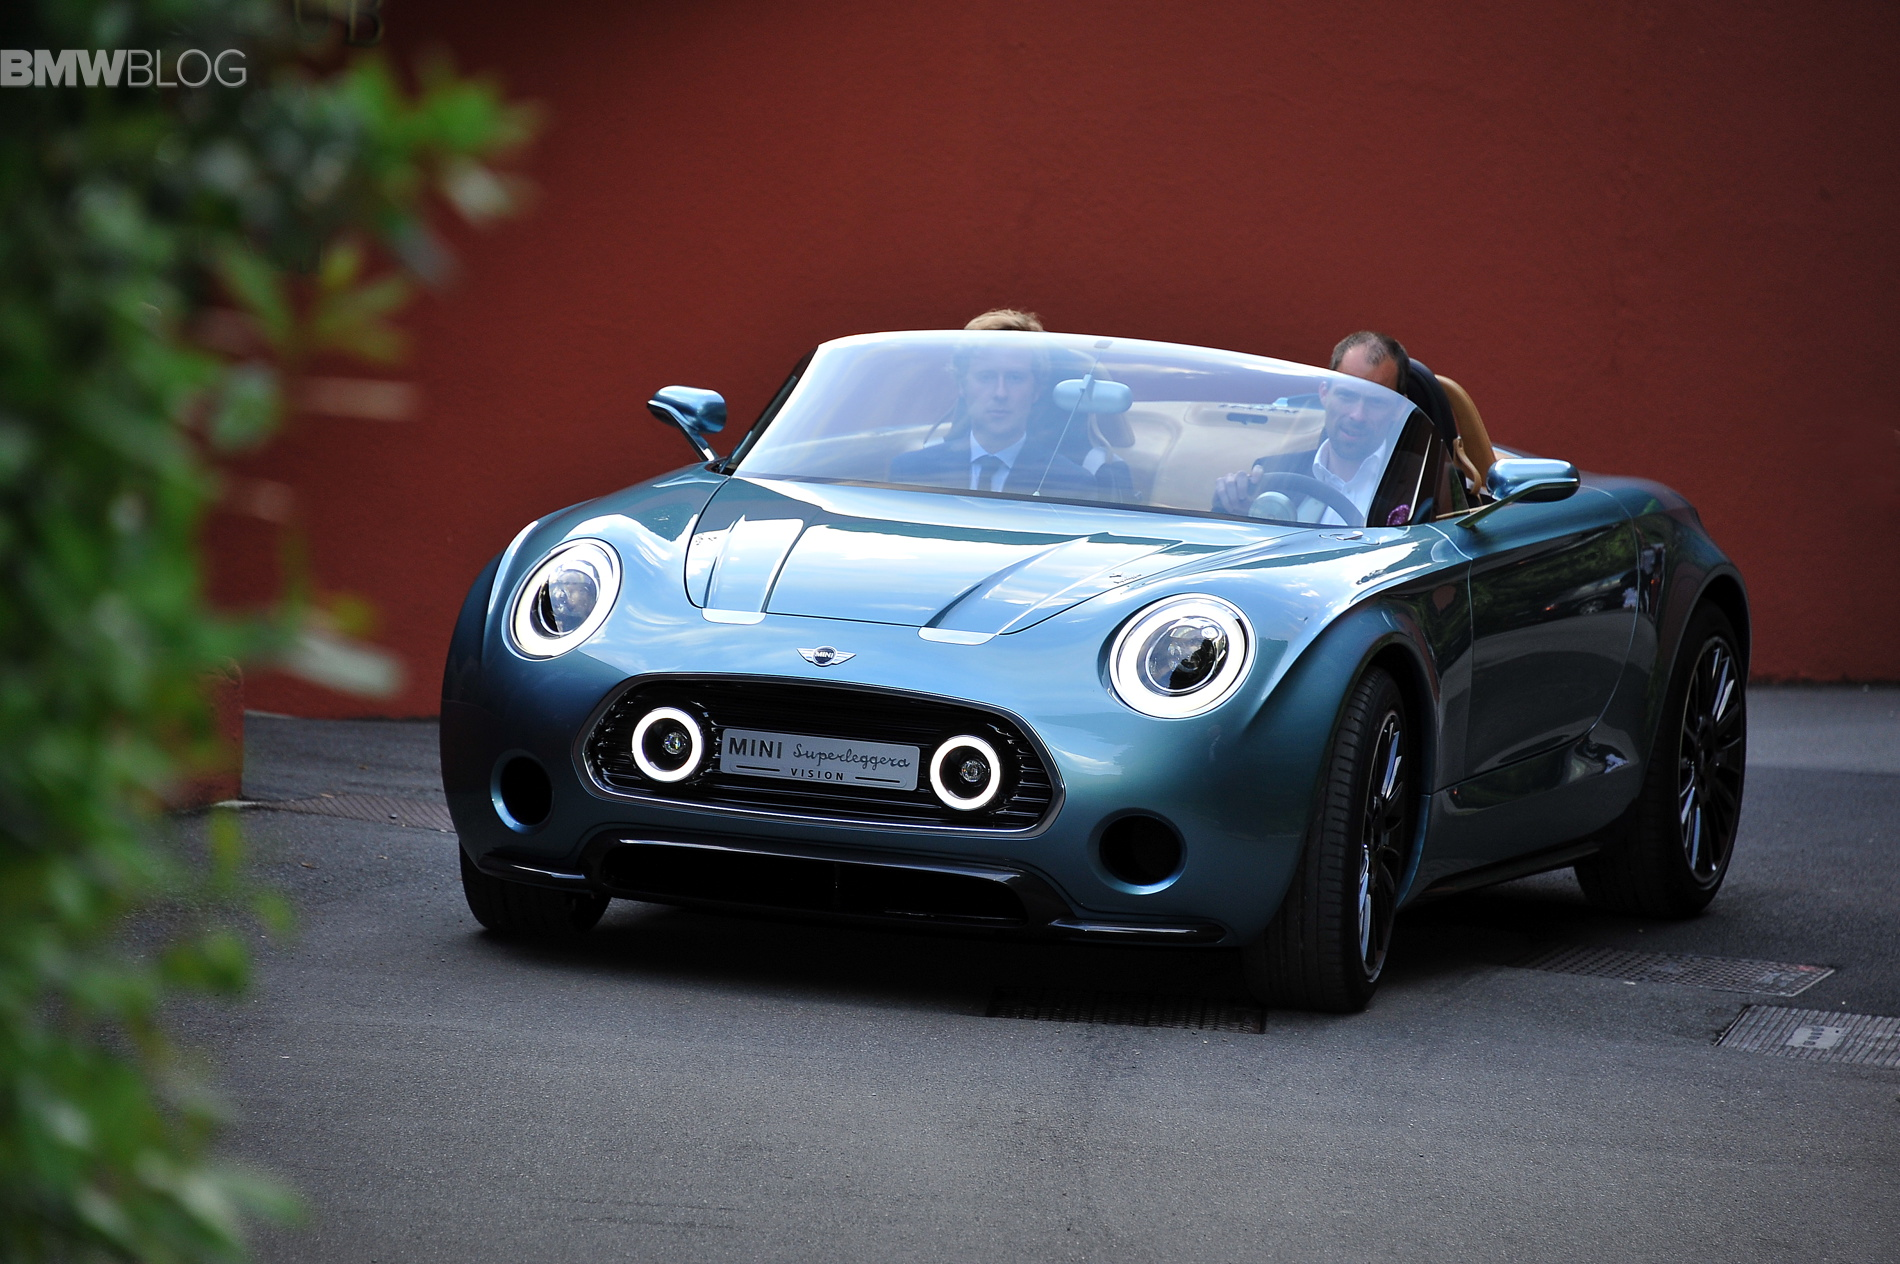 MINI Superleggera Vision villa deste 17